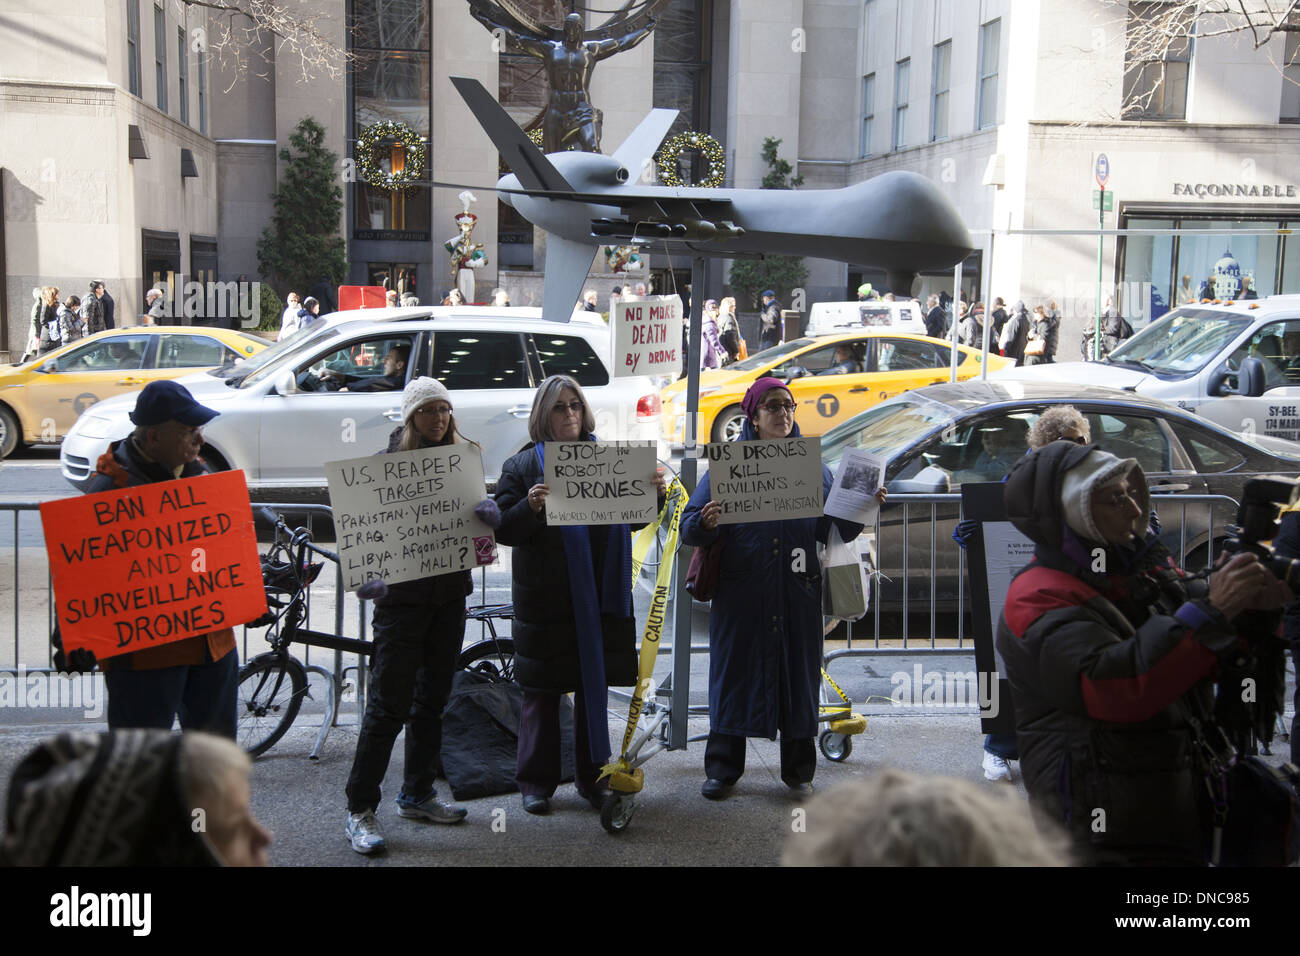 Activists speak out against the US military drone program in foreign countries killing many civilians. - Stock Image